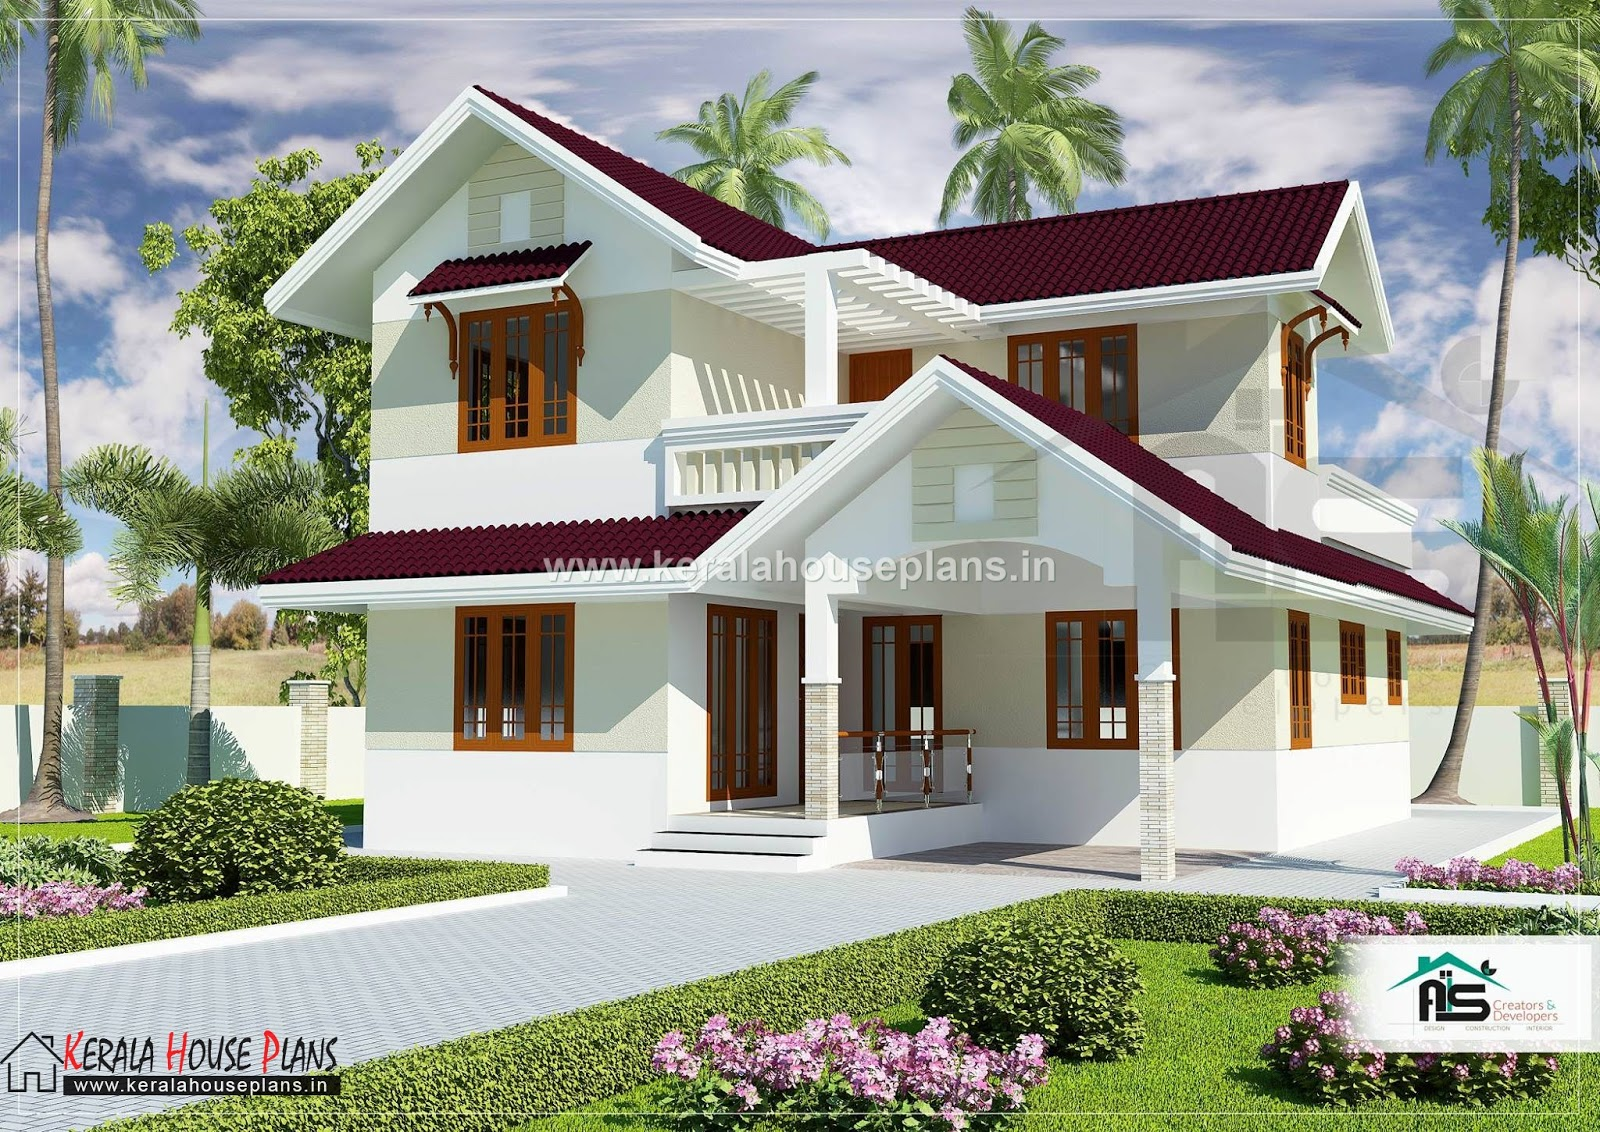 kerala model house plans with elevation 1829 sqft kerala low cost house plans kerala model home plans